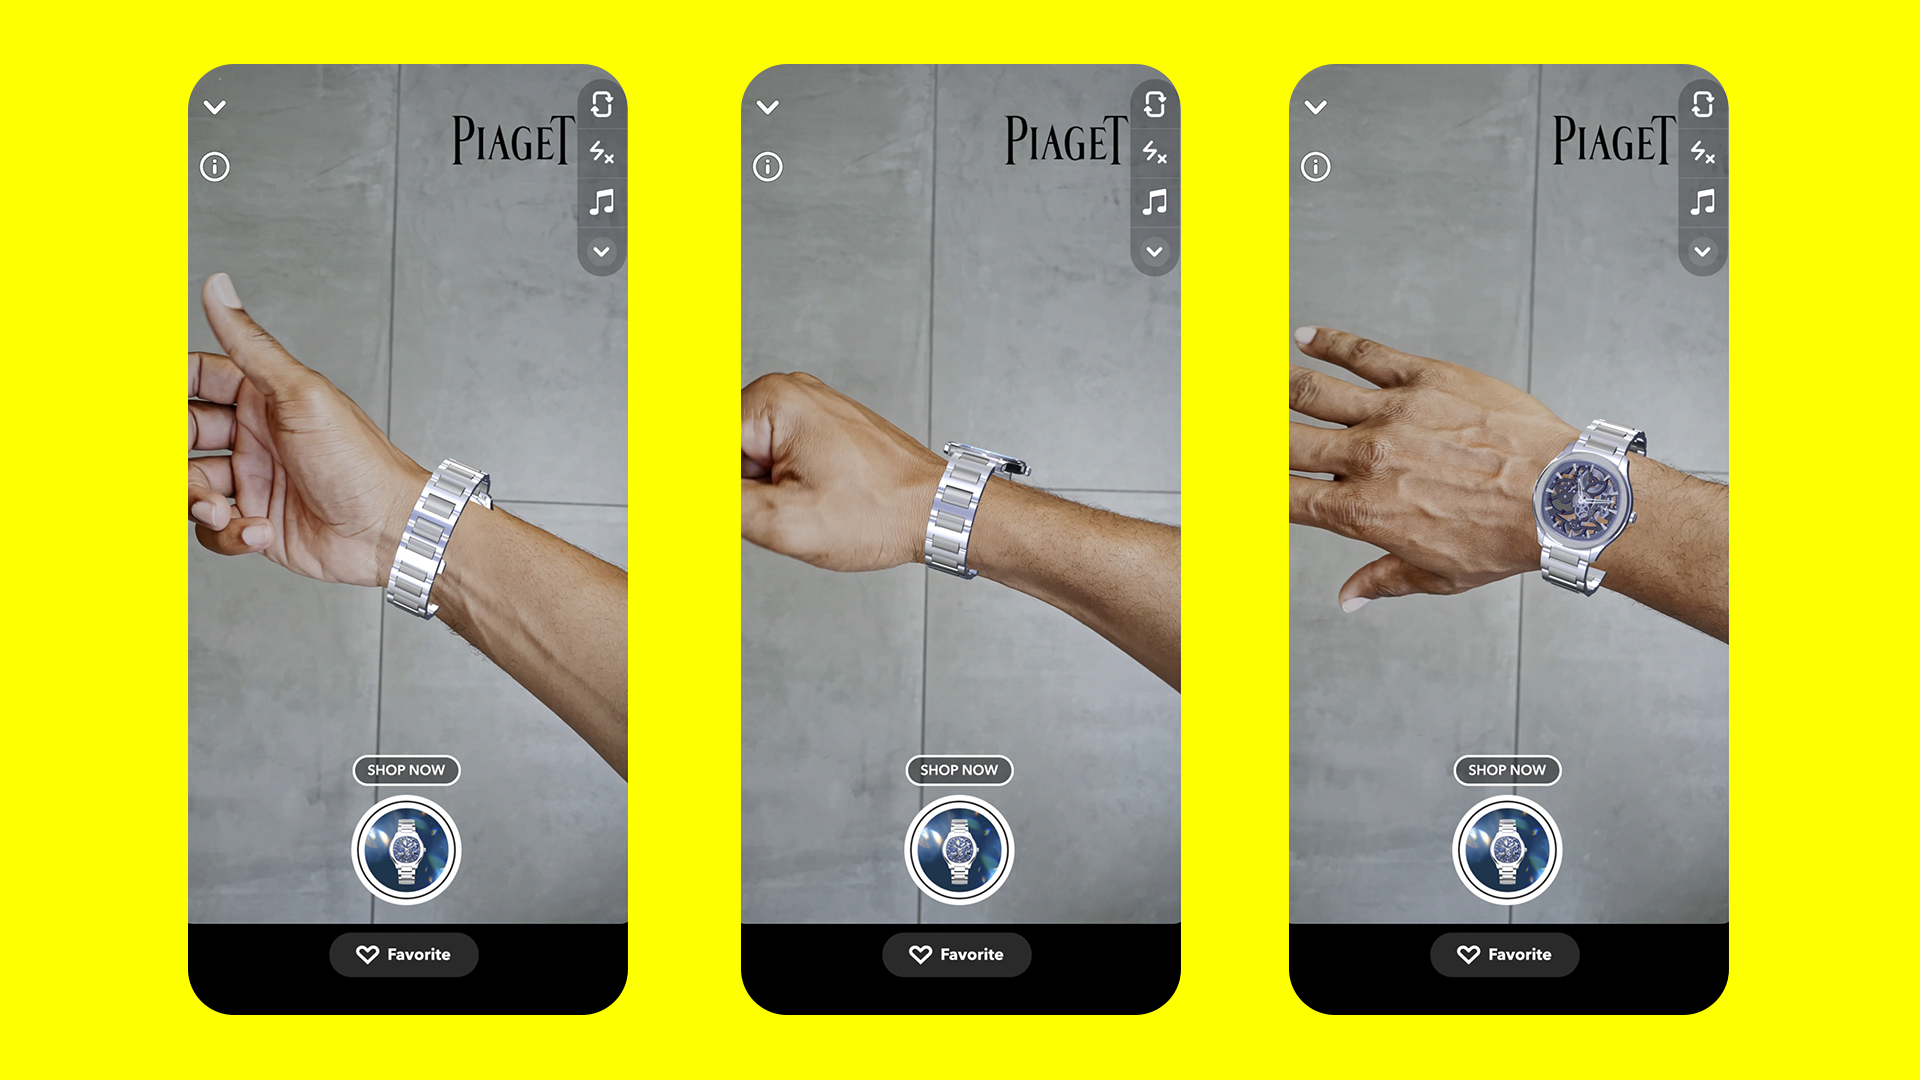 Snapchat's new e-commerce offering for 'wrist-tracking', showcasing a Piaget watch through AR technology. (Supplied)